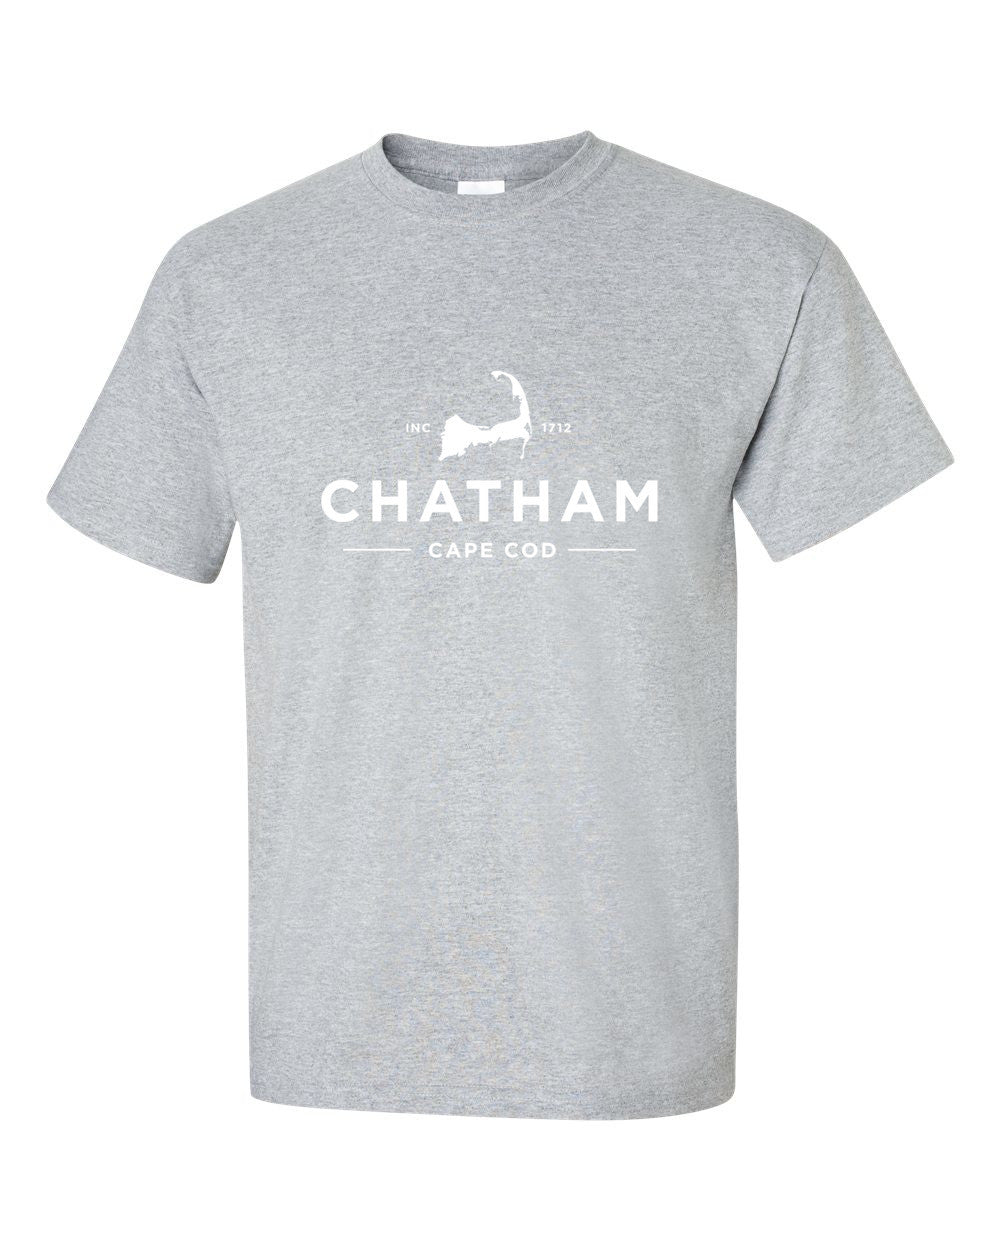 Chatham Cape Cod short sleeve t-shirt